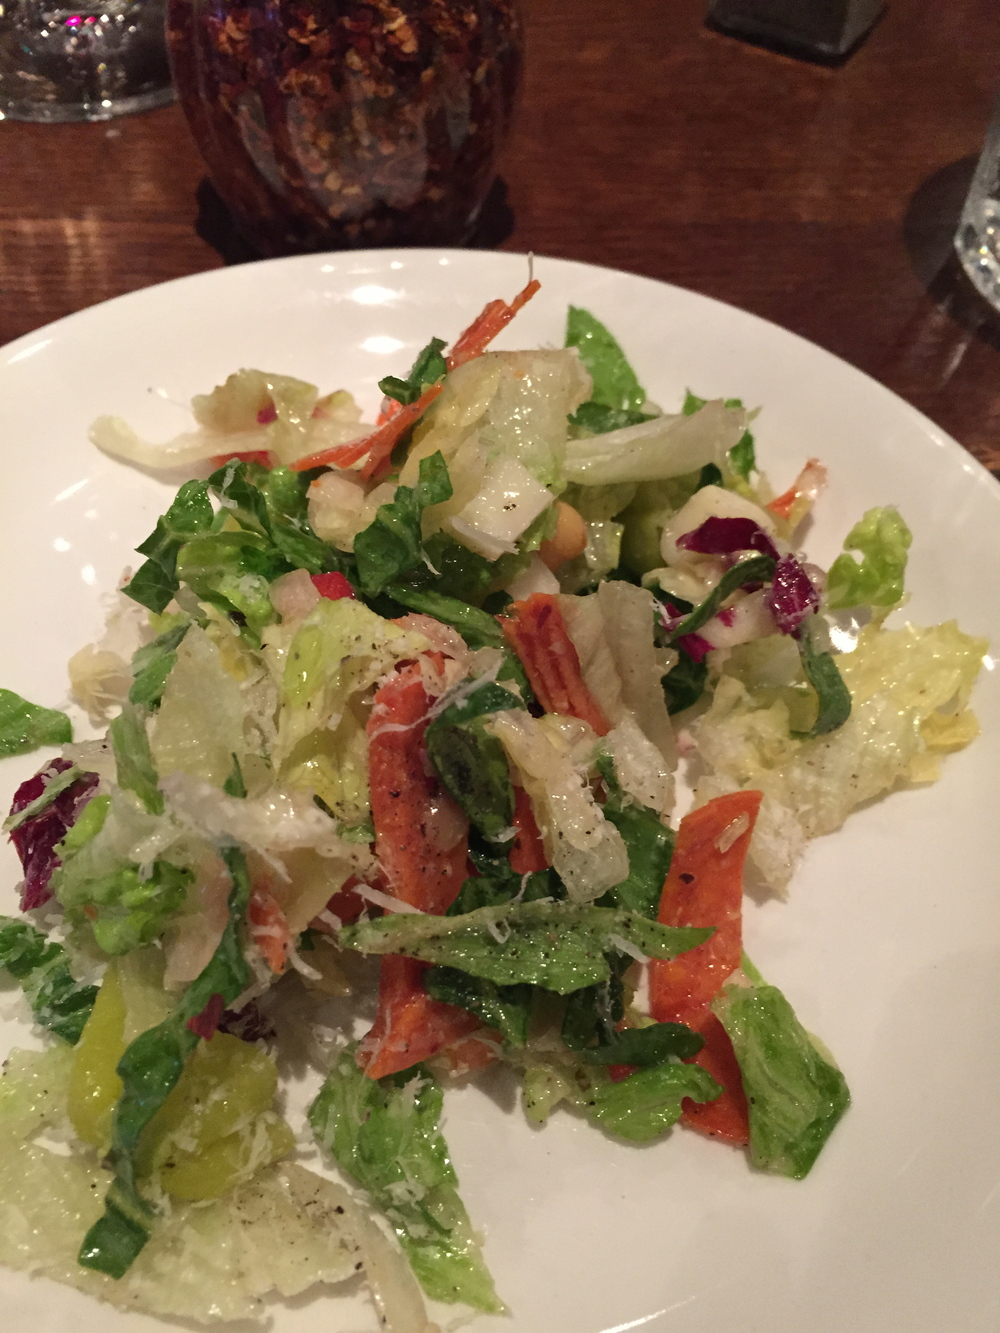 This was the chopped salad. Really good also